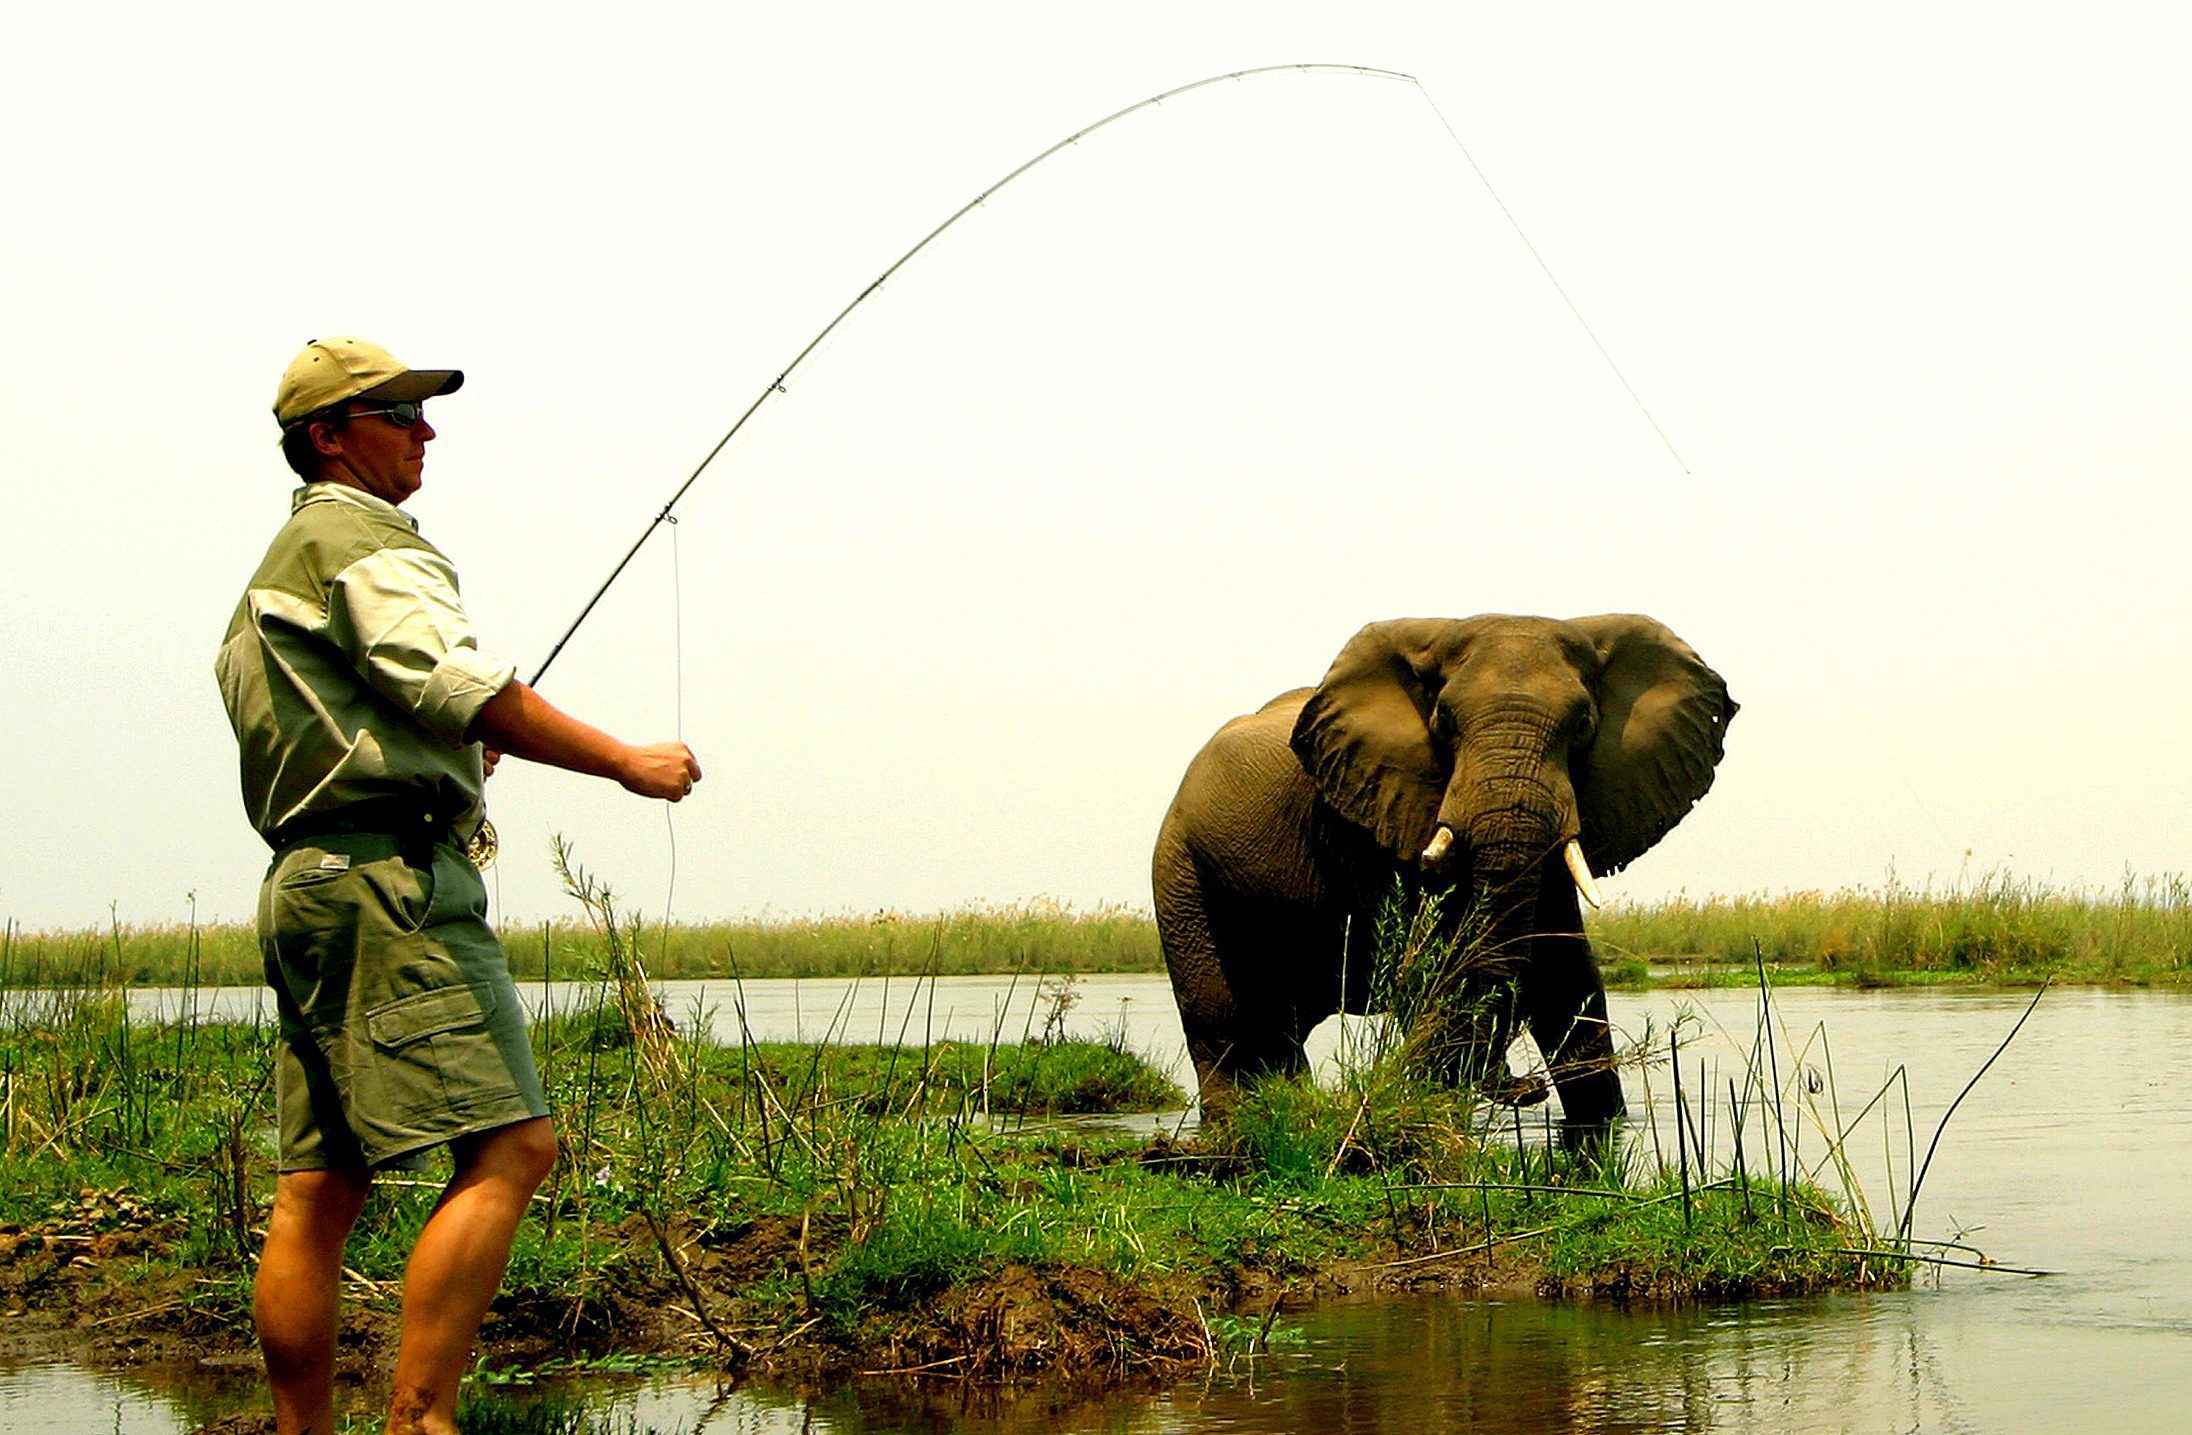 a man is holding a fishing pole while an elephant walks behind him